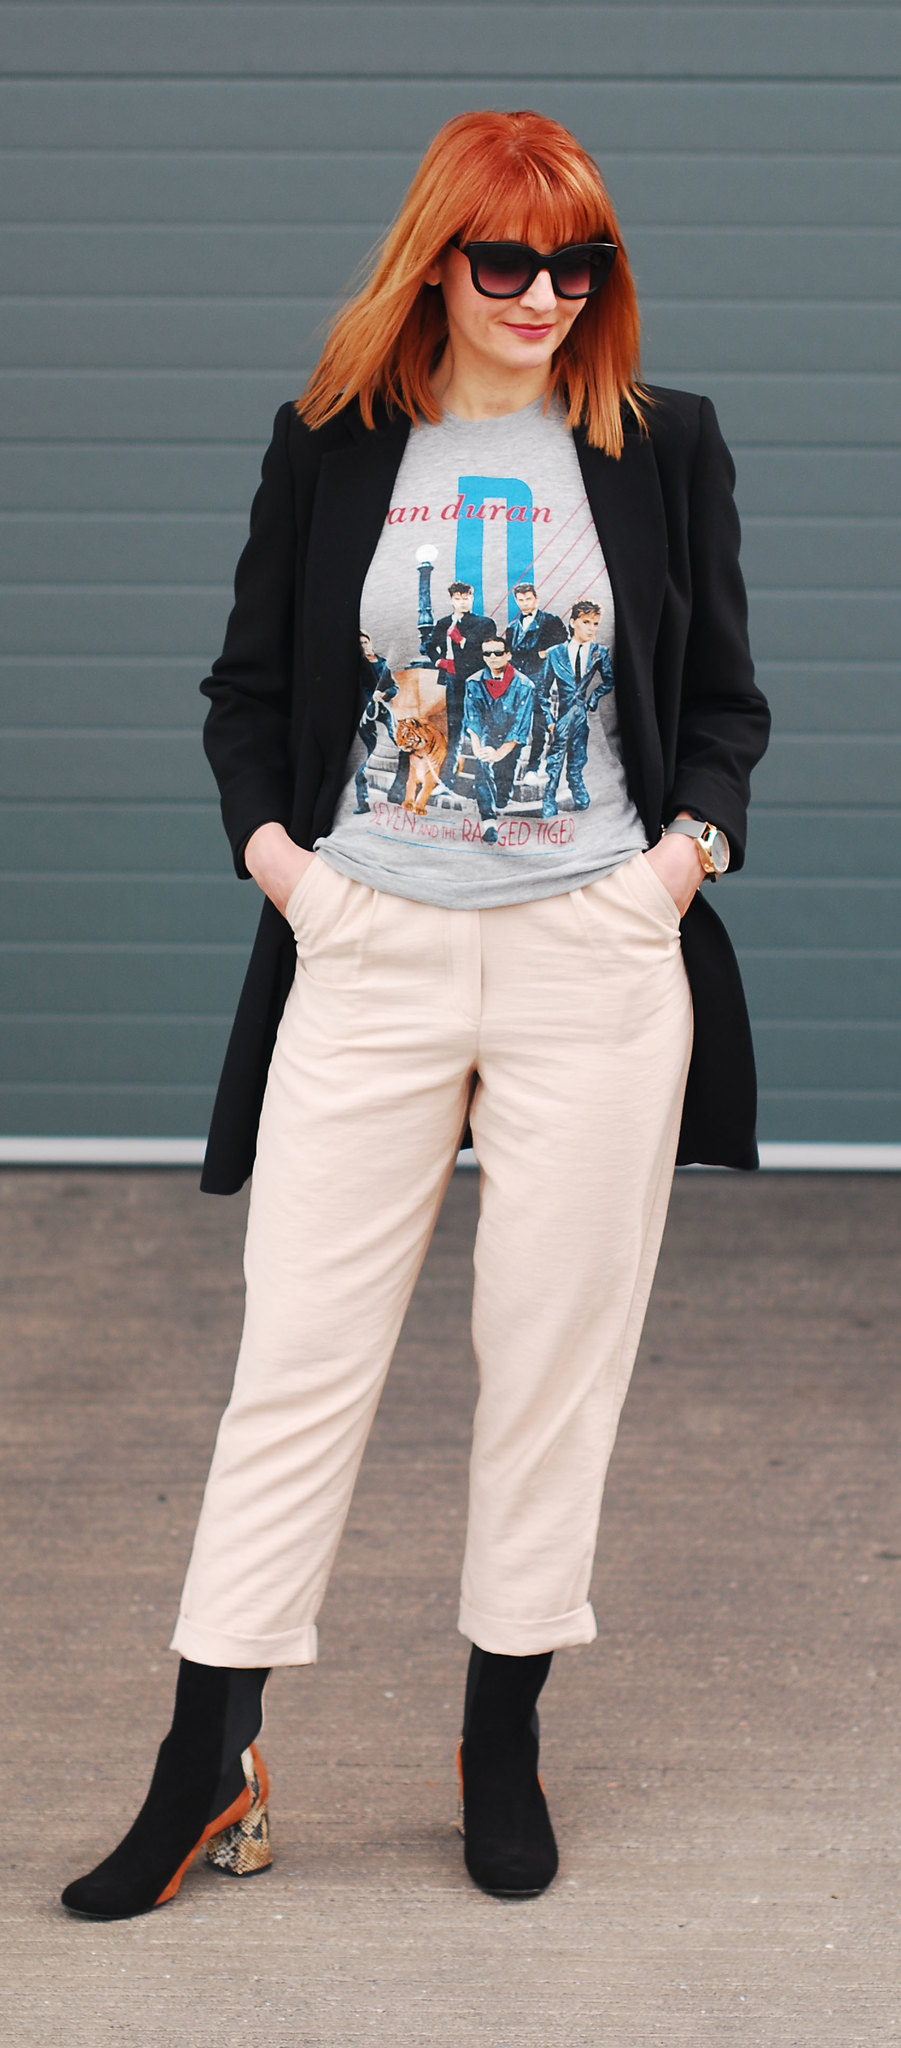 Styling an original band t-shirt: Longline black blazer \ vintage Duran Duran tour t-shirt \ taupe peg leg menswear-style trousers \ snakeskin and panelled suede Finery ankle boots | Not Dressed As Lamb, over 40 style